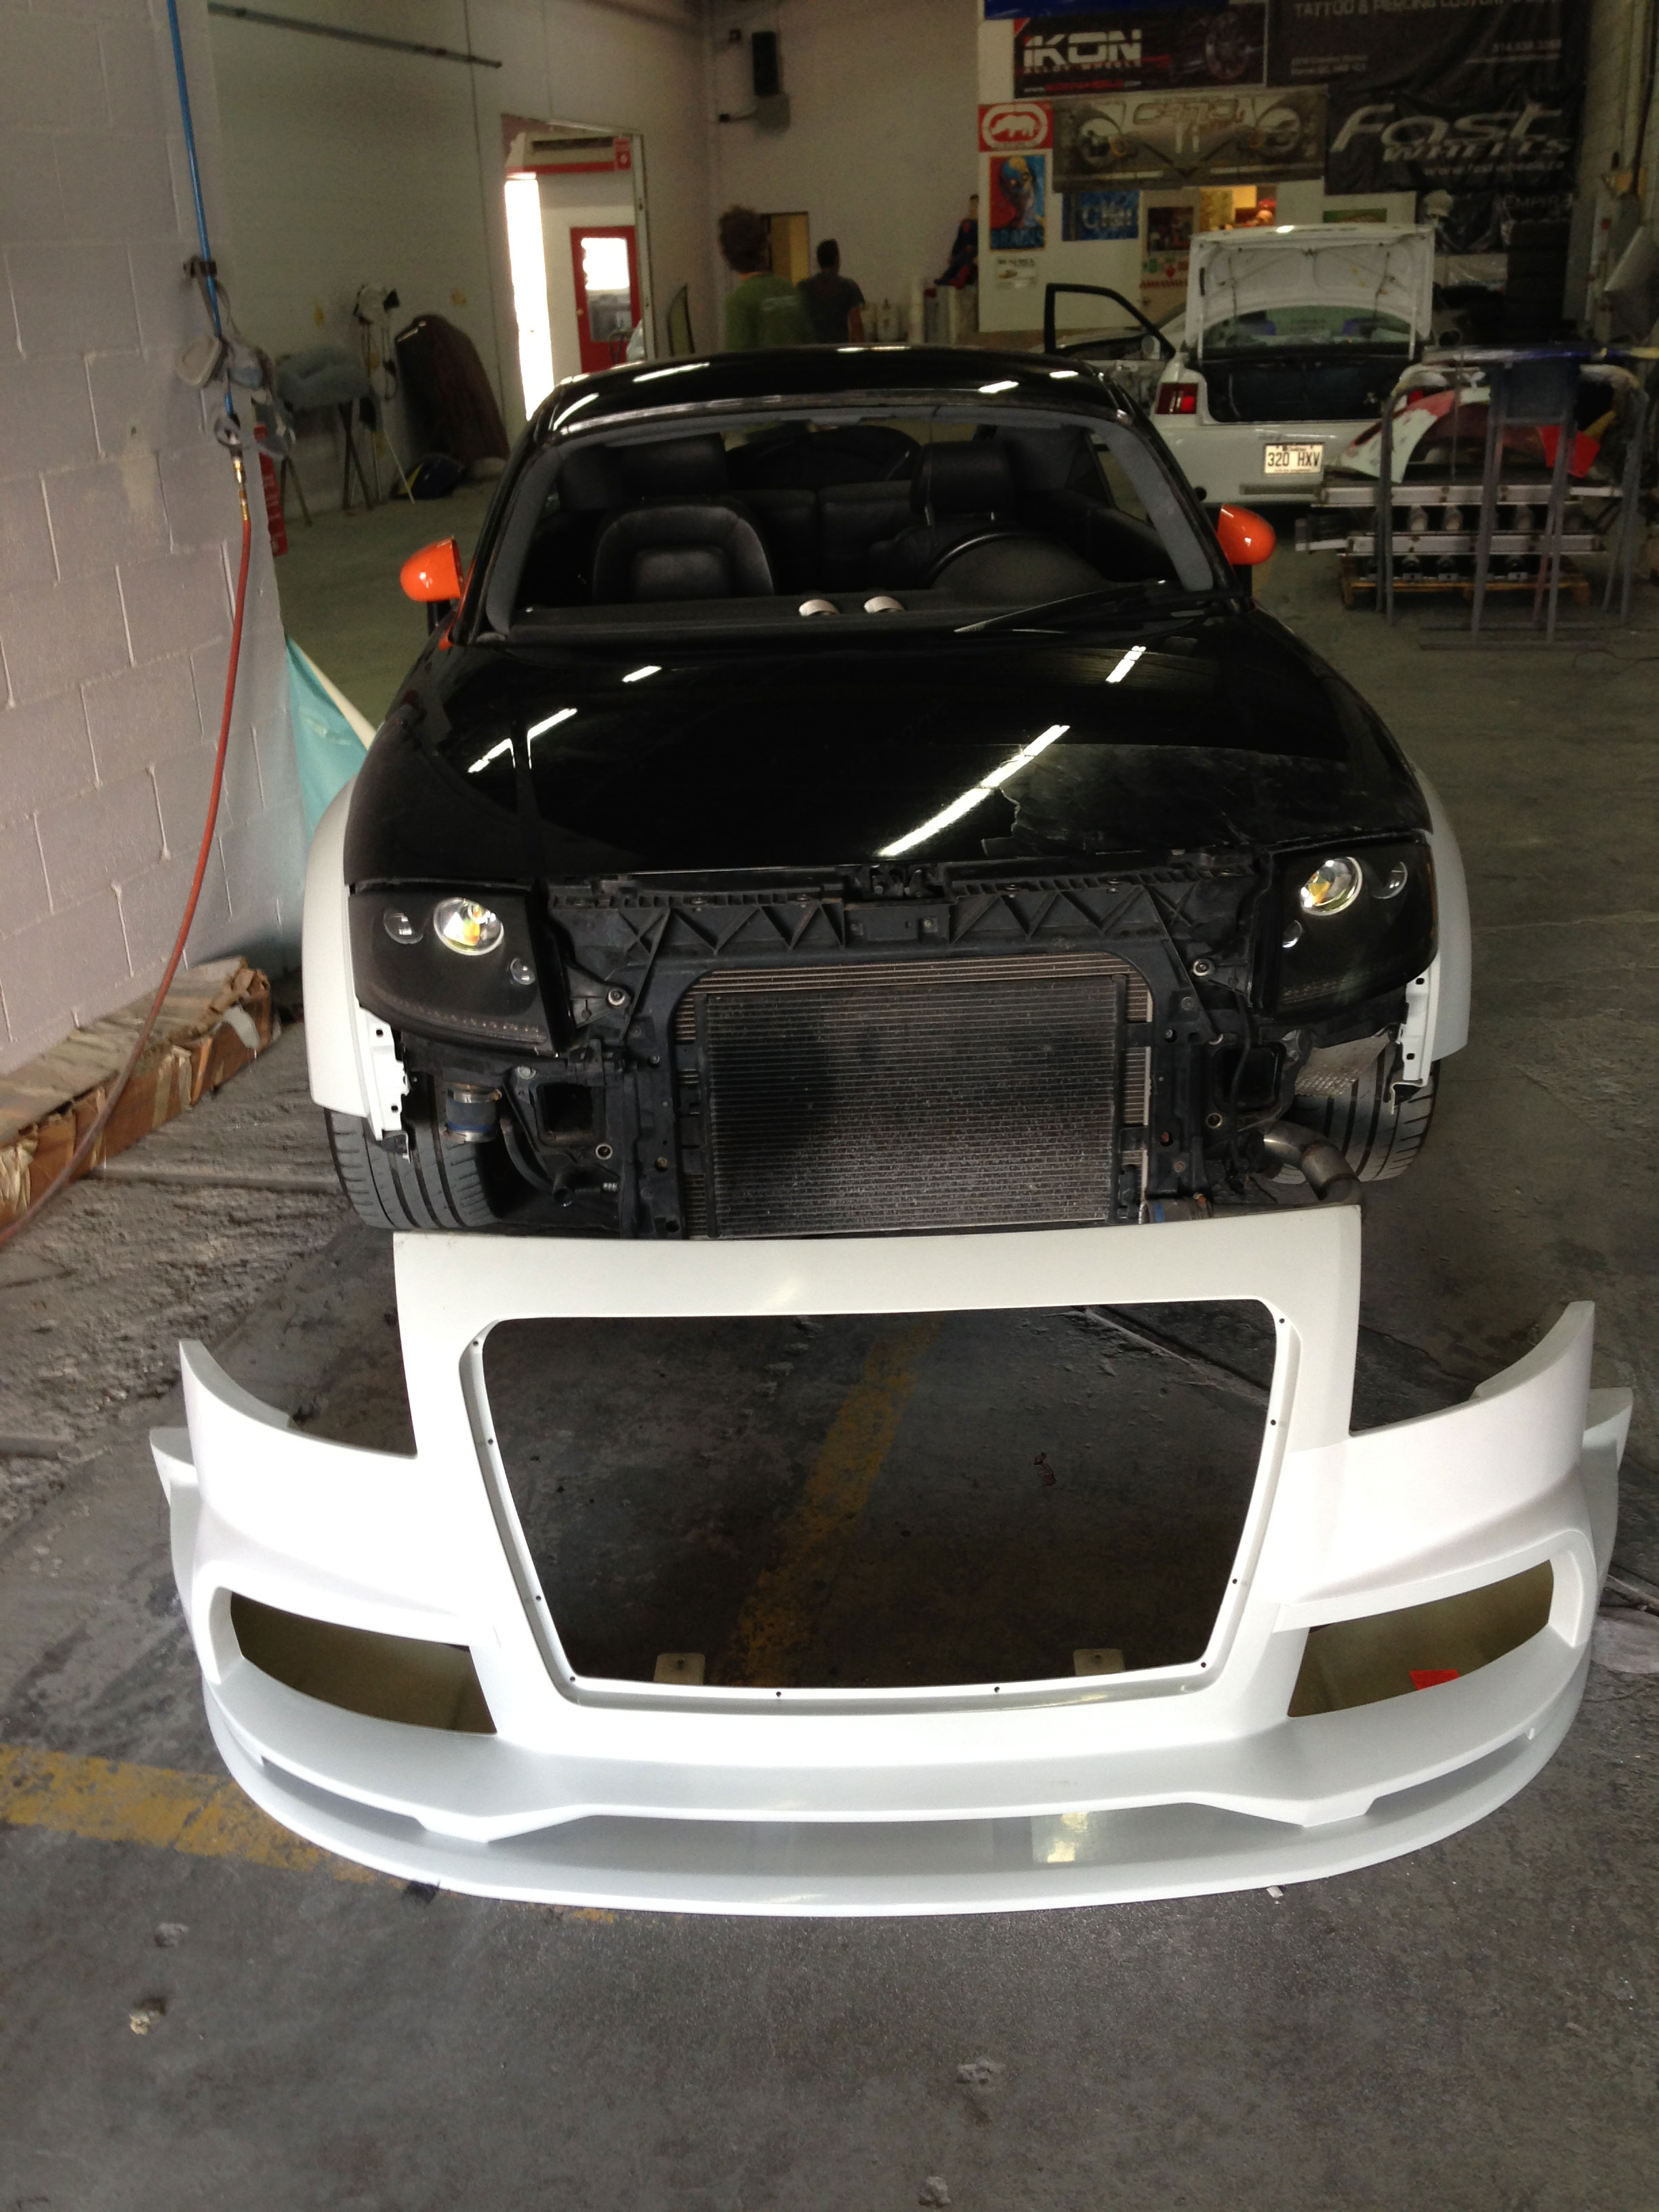 Used Audi Tt For Sale >> Audi TT Tuning: Paint Preparation aka Prep4Paint | Audi TT ...